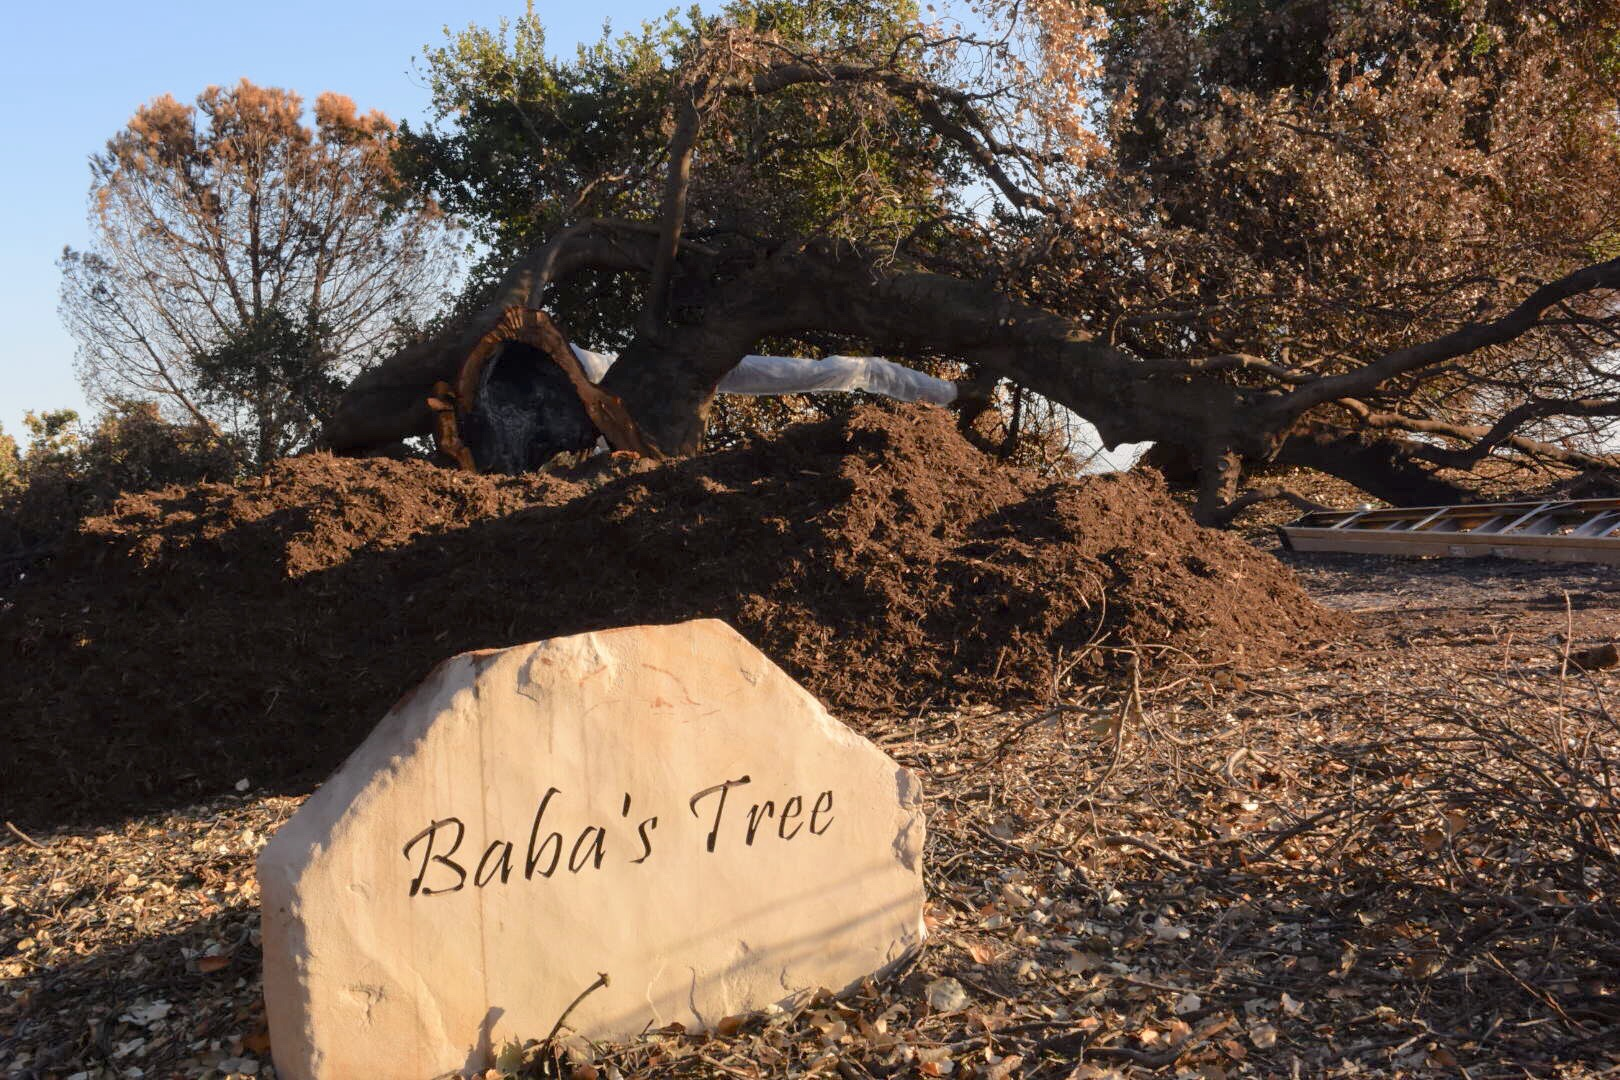 24-CUBIC YARDS of mulch waiting for the perfect volunteers to spread this compost around the trunk and under the canopy of Baba's Tree to help retain moisture and encourage living soil. (Photo: Ray Johnston, February 18, 2018)